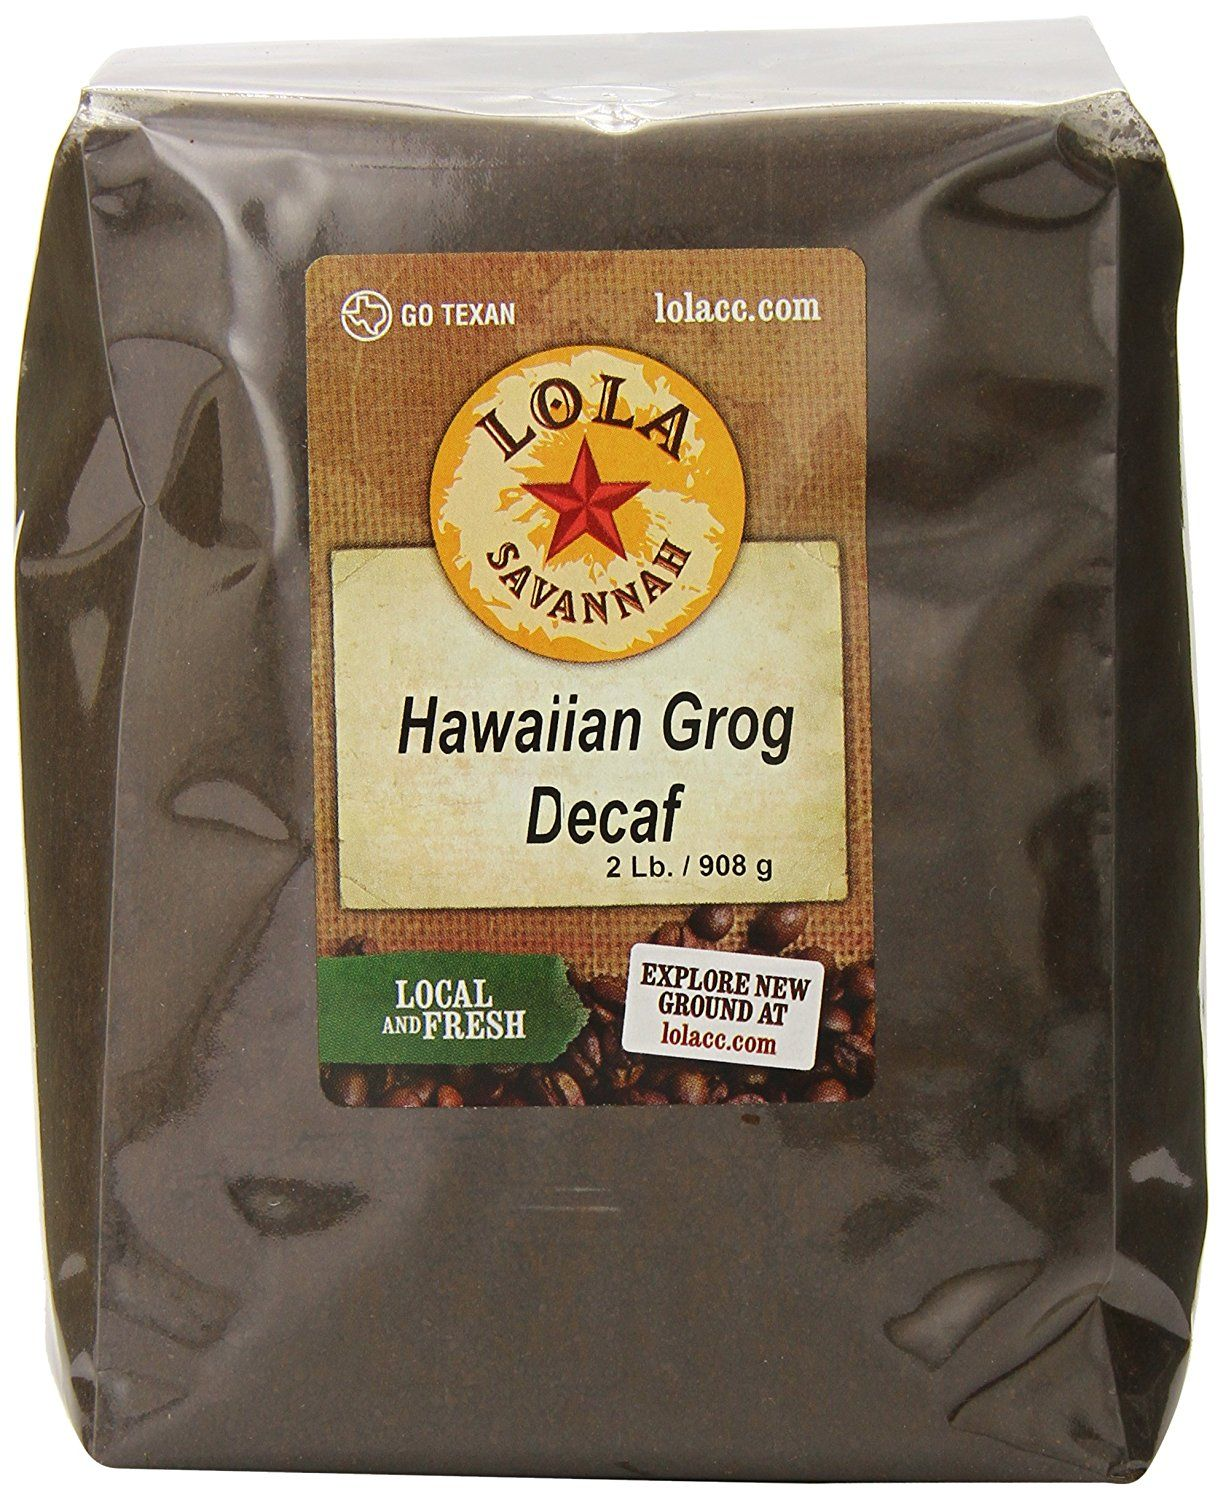 Hawaiian grog continue to the product at the image